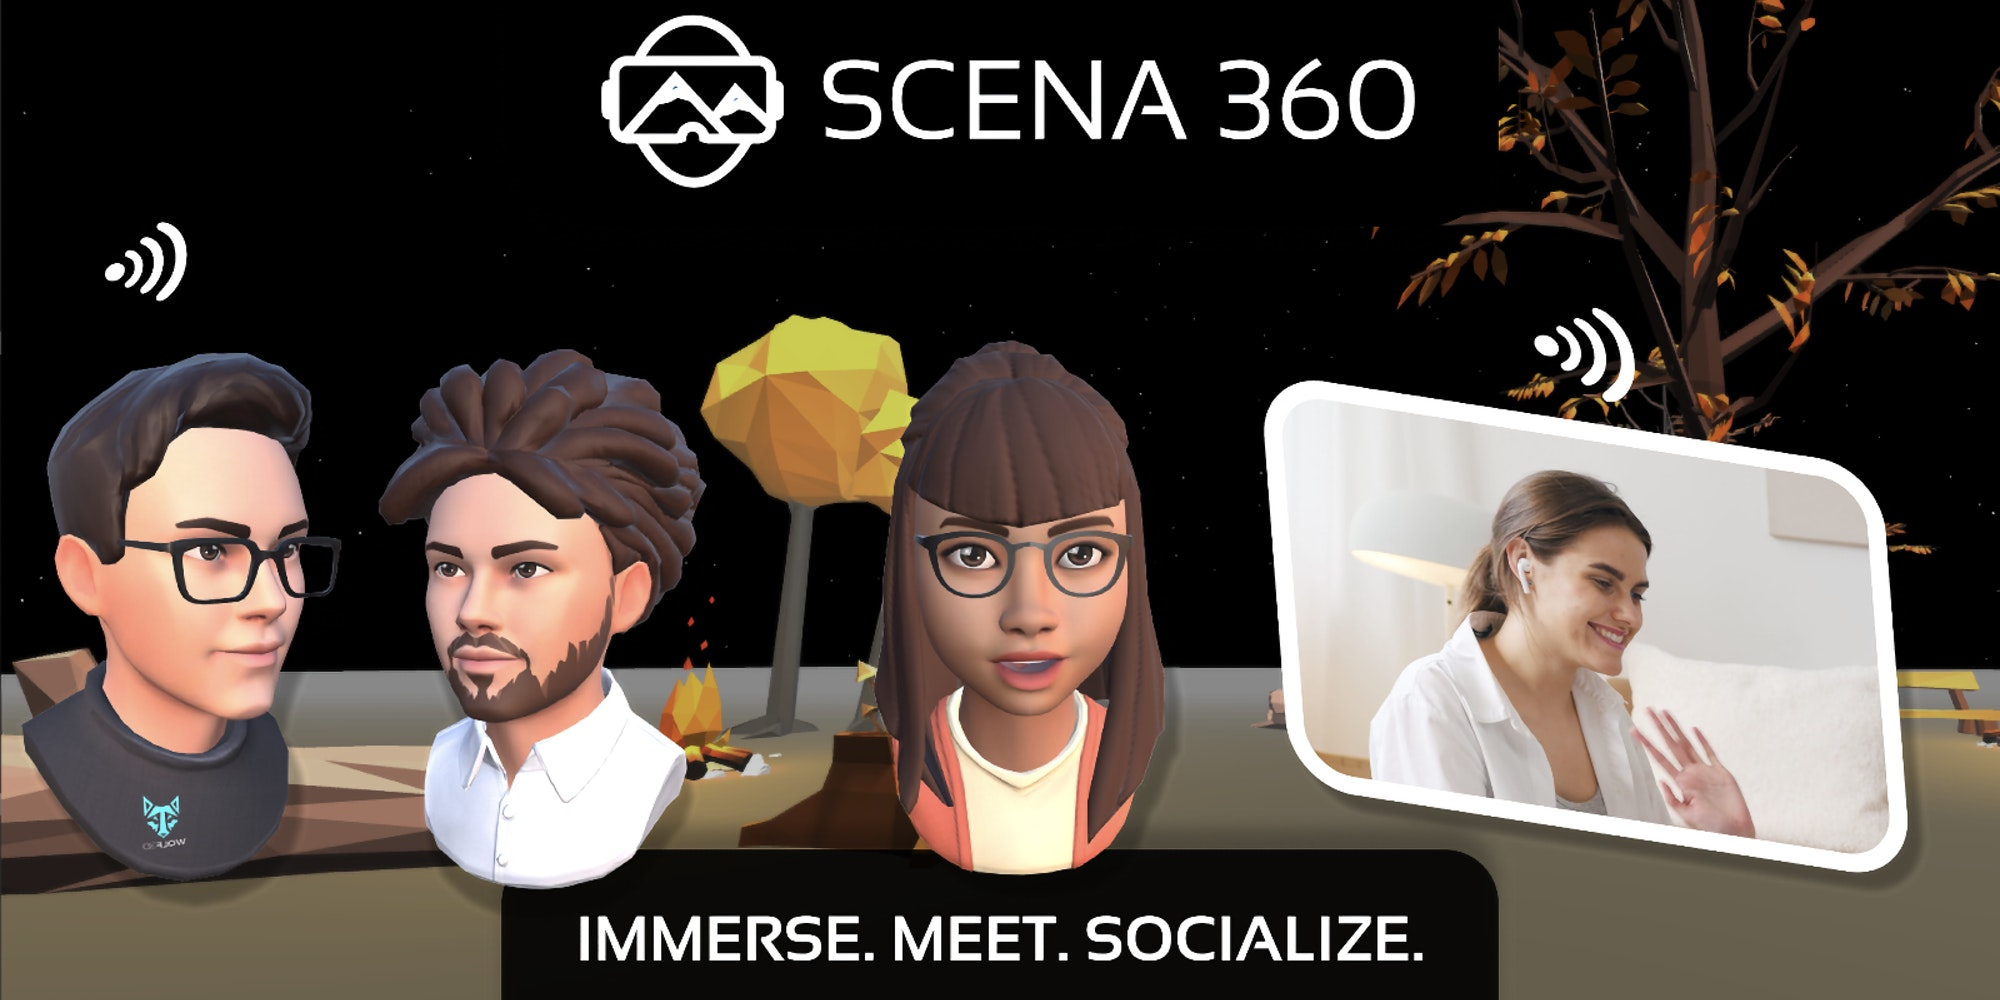 Scena 360 Fights With Zoom Fatigue Using Ready Player Me Avatars